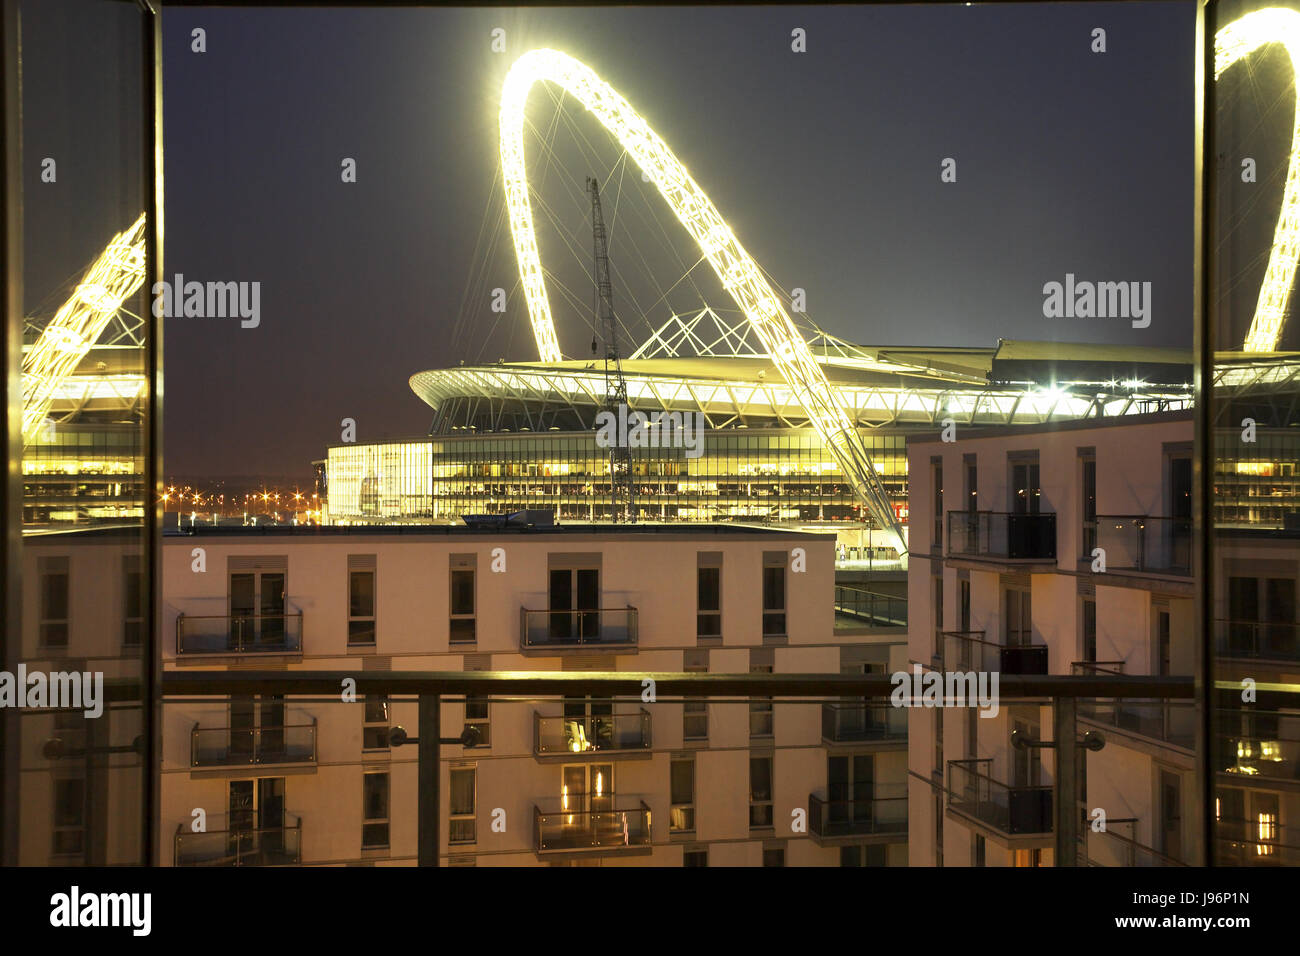 View of Wembley - Stock Image